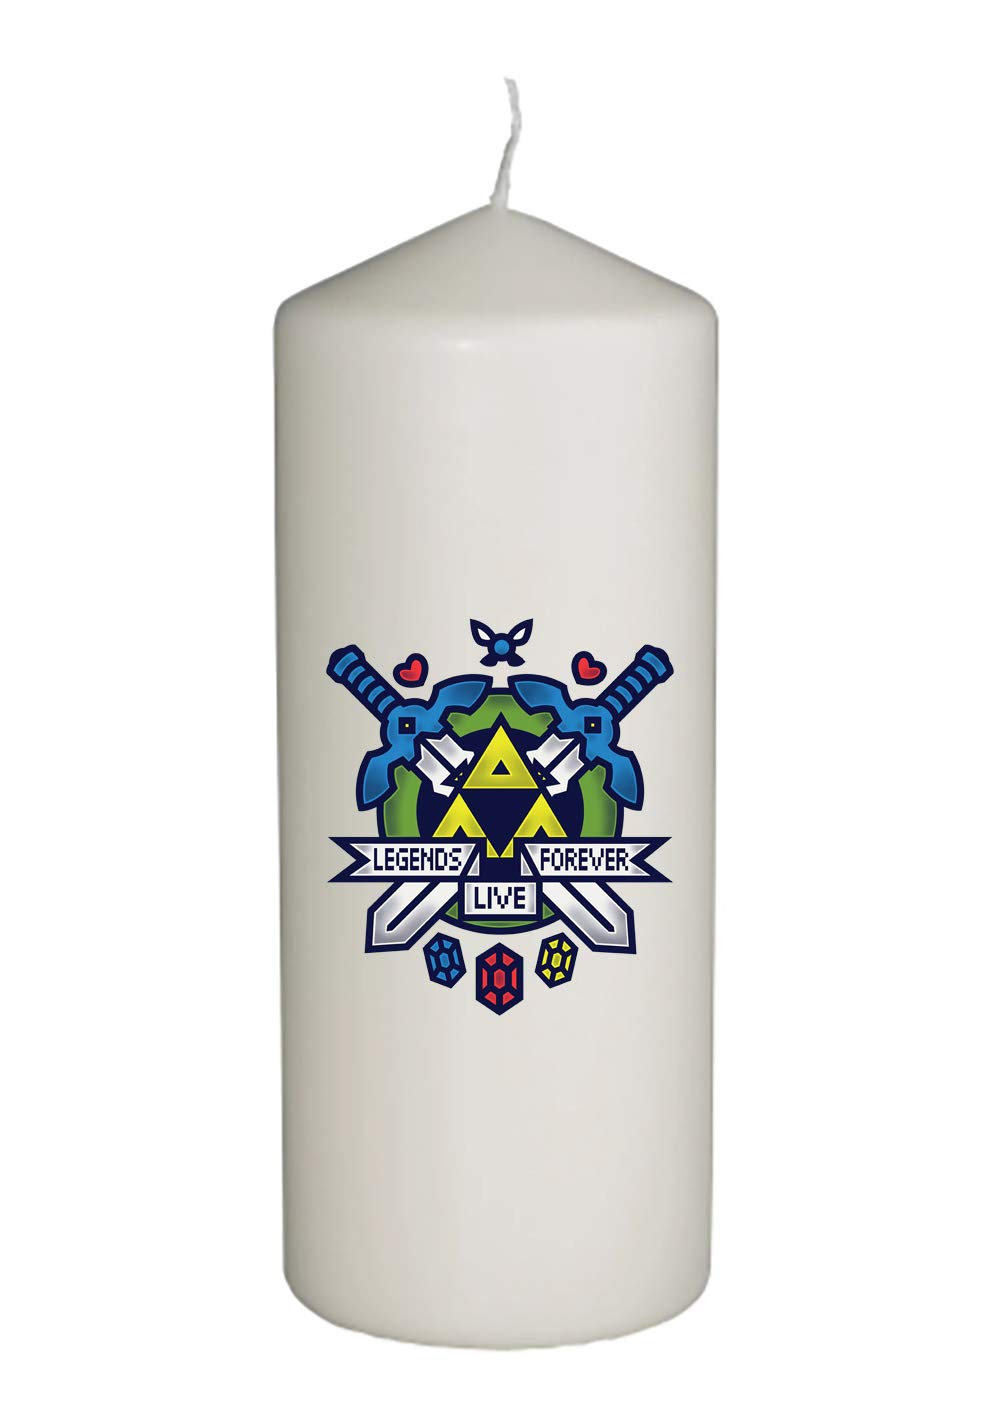 Hit Restart Video Game Parody Thick White in Full Color Unity Candle - Wedding, Baptism, Funeral, Special Event Decoration (6 inches Tall)